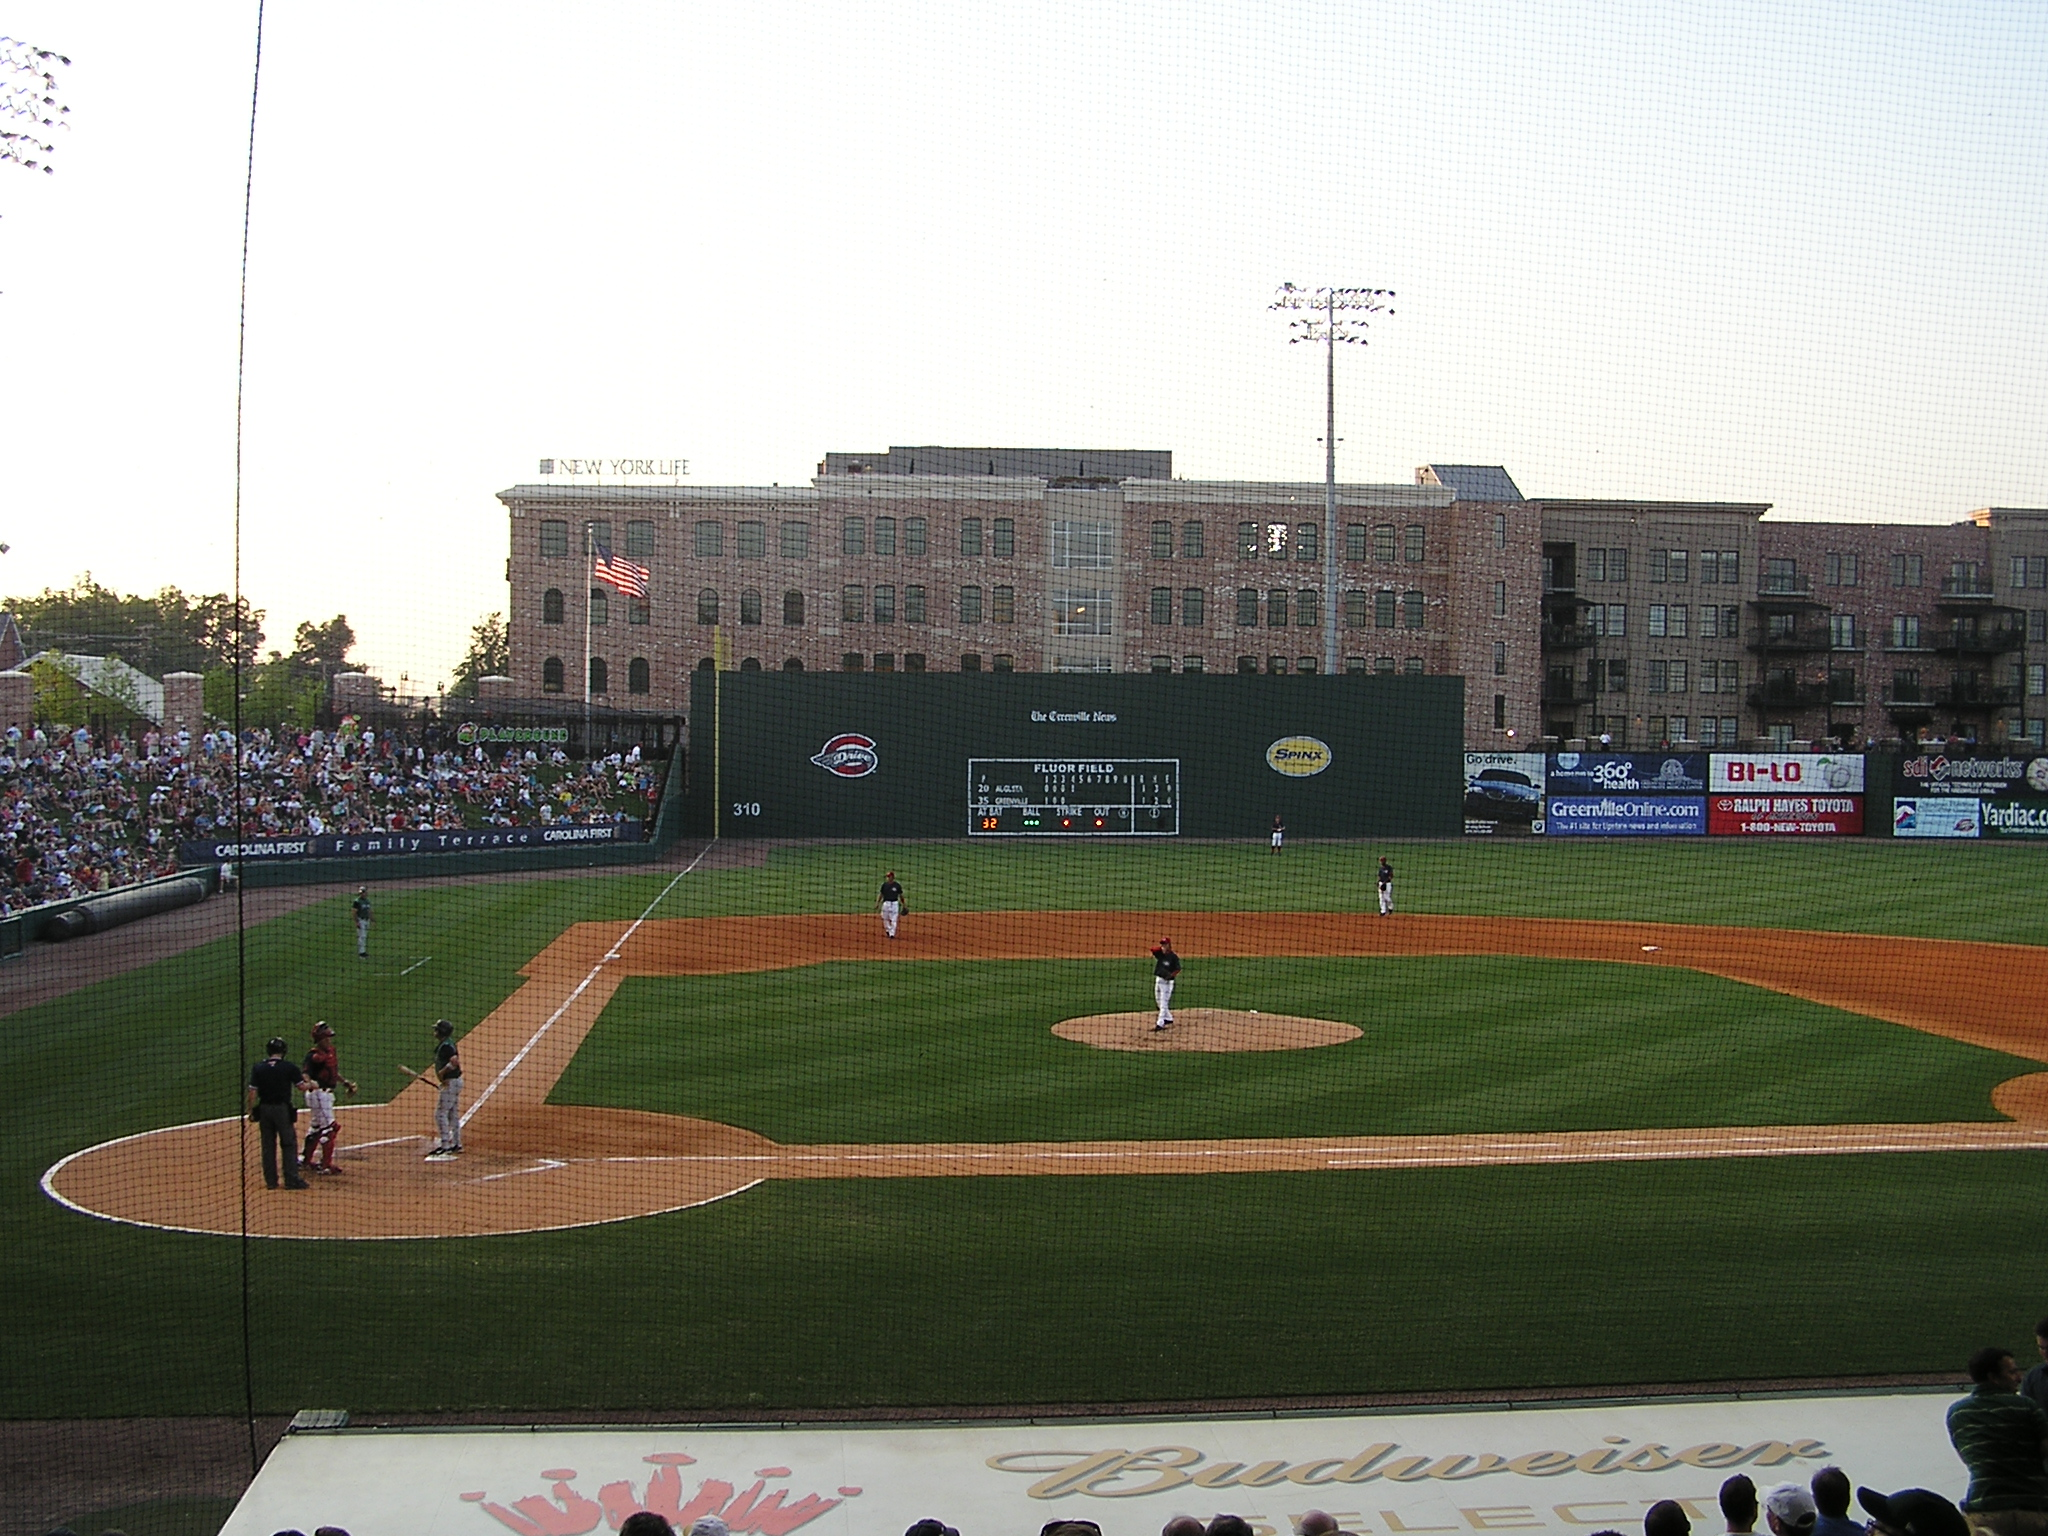 Looking towards LF at Fluor Field, Greenville